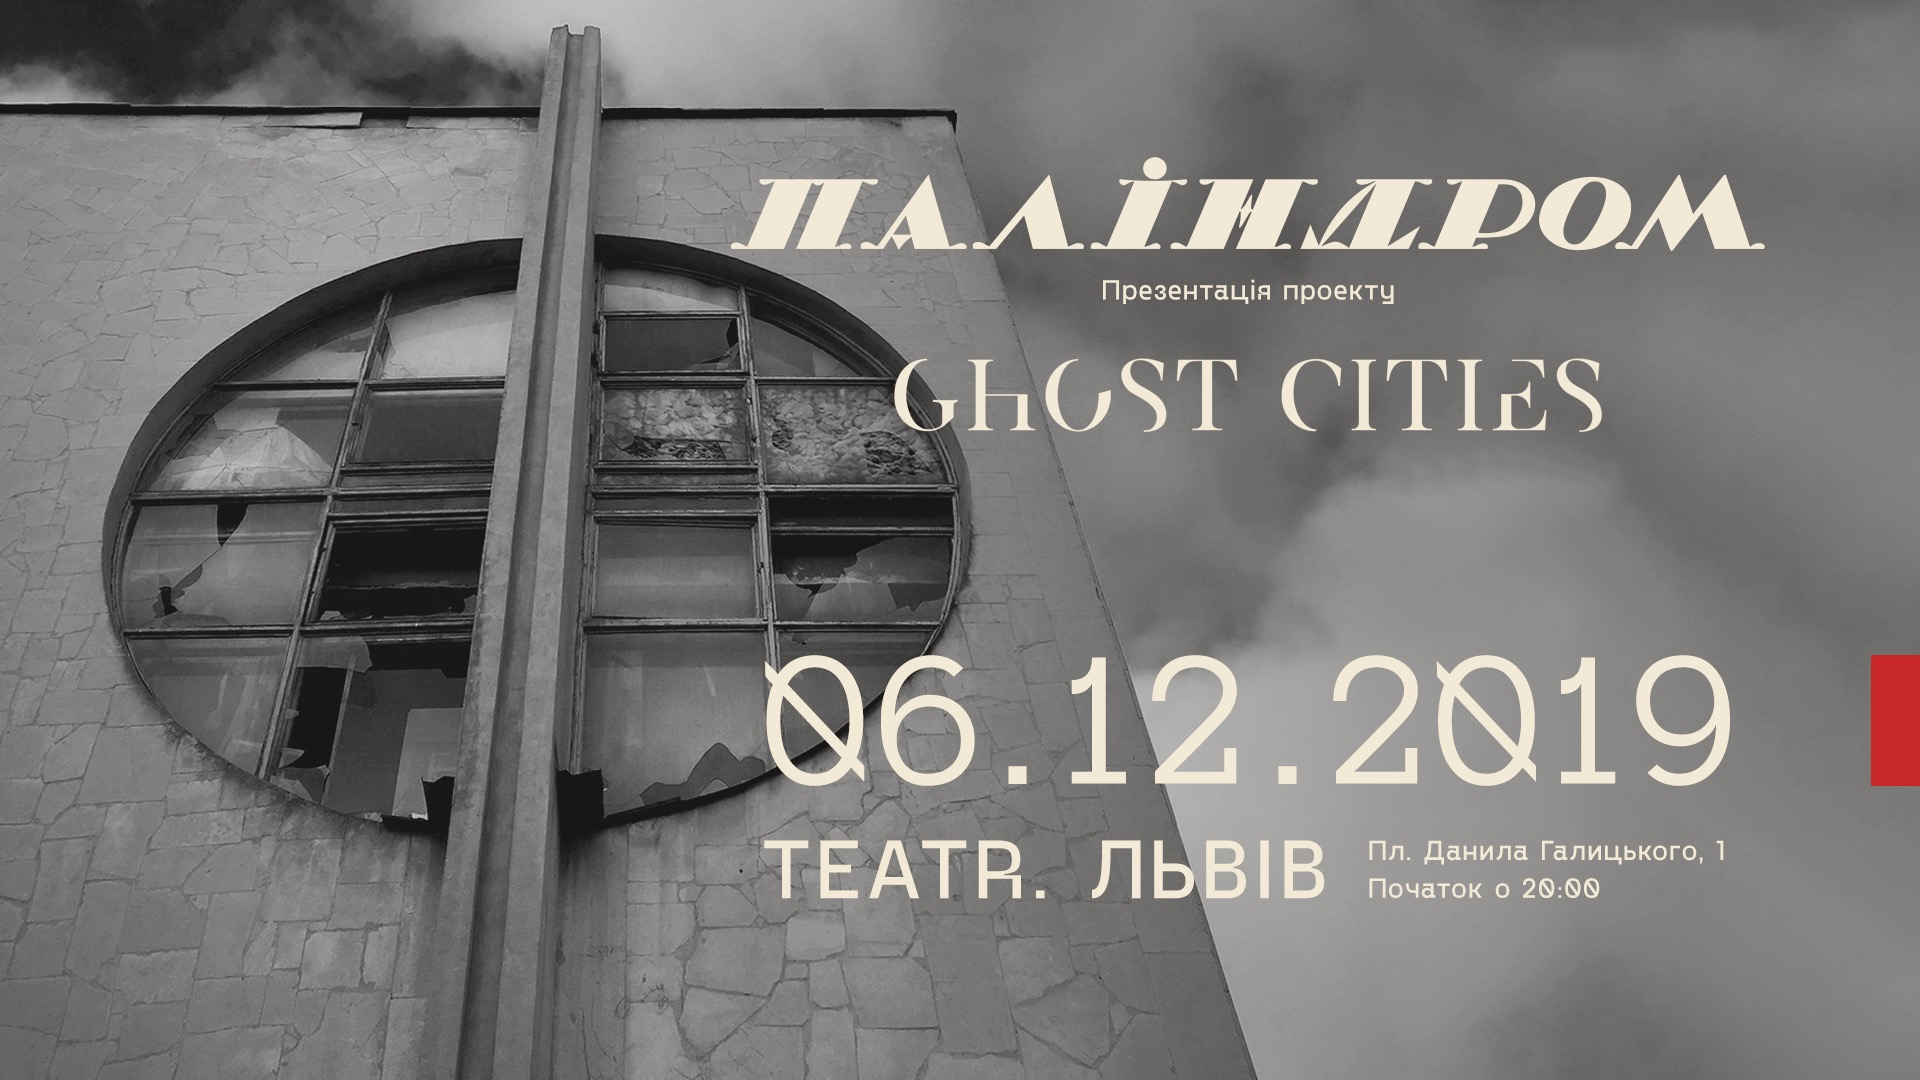 Паліндром та Ghost Cities / Lviv / TEATR / 06.12.2019